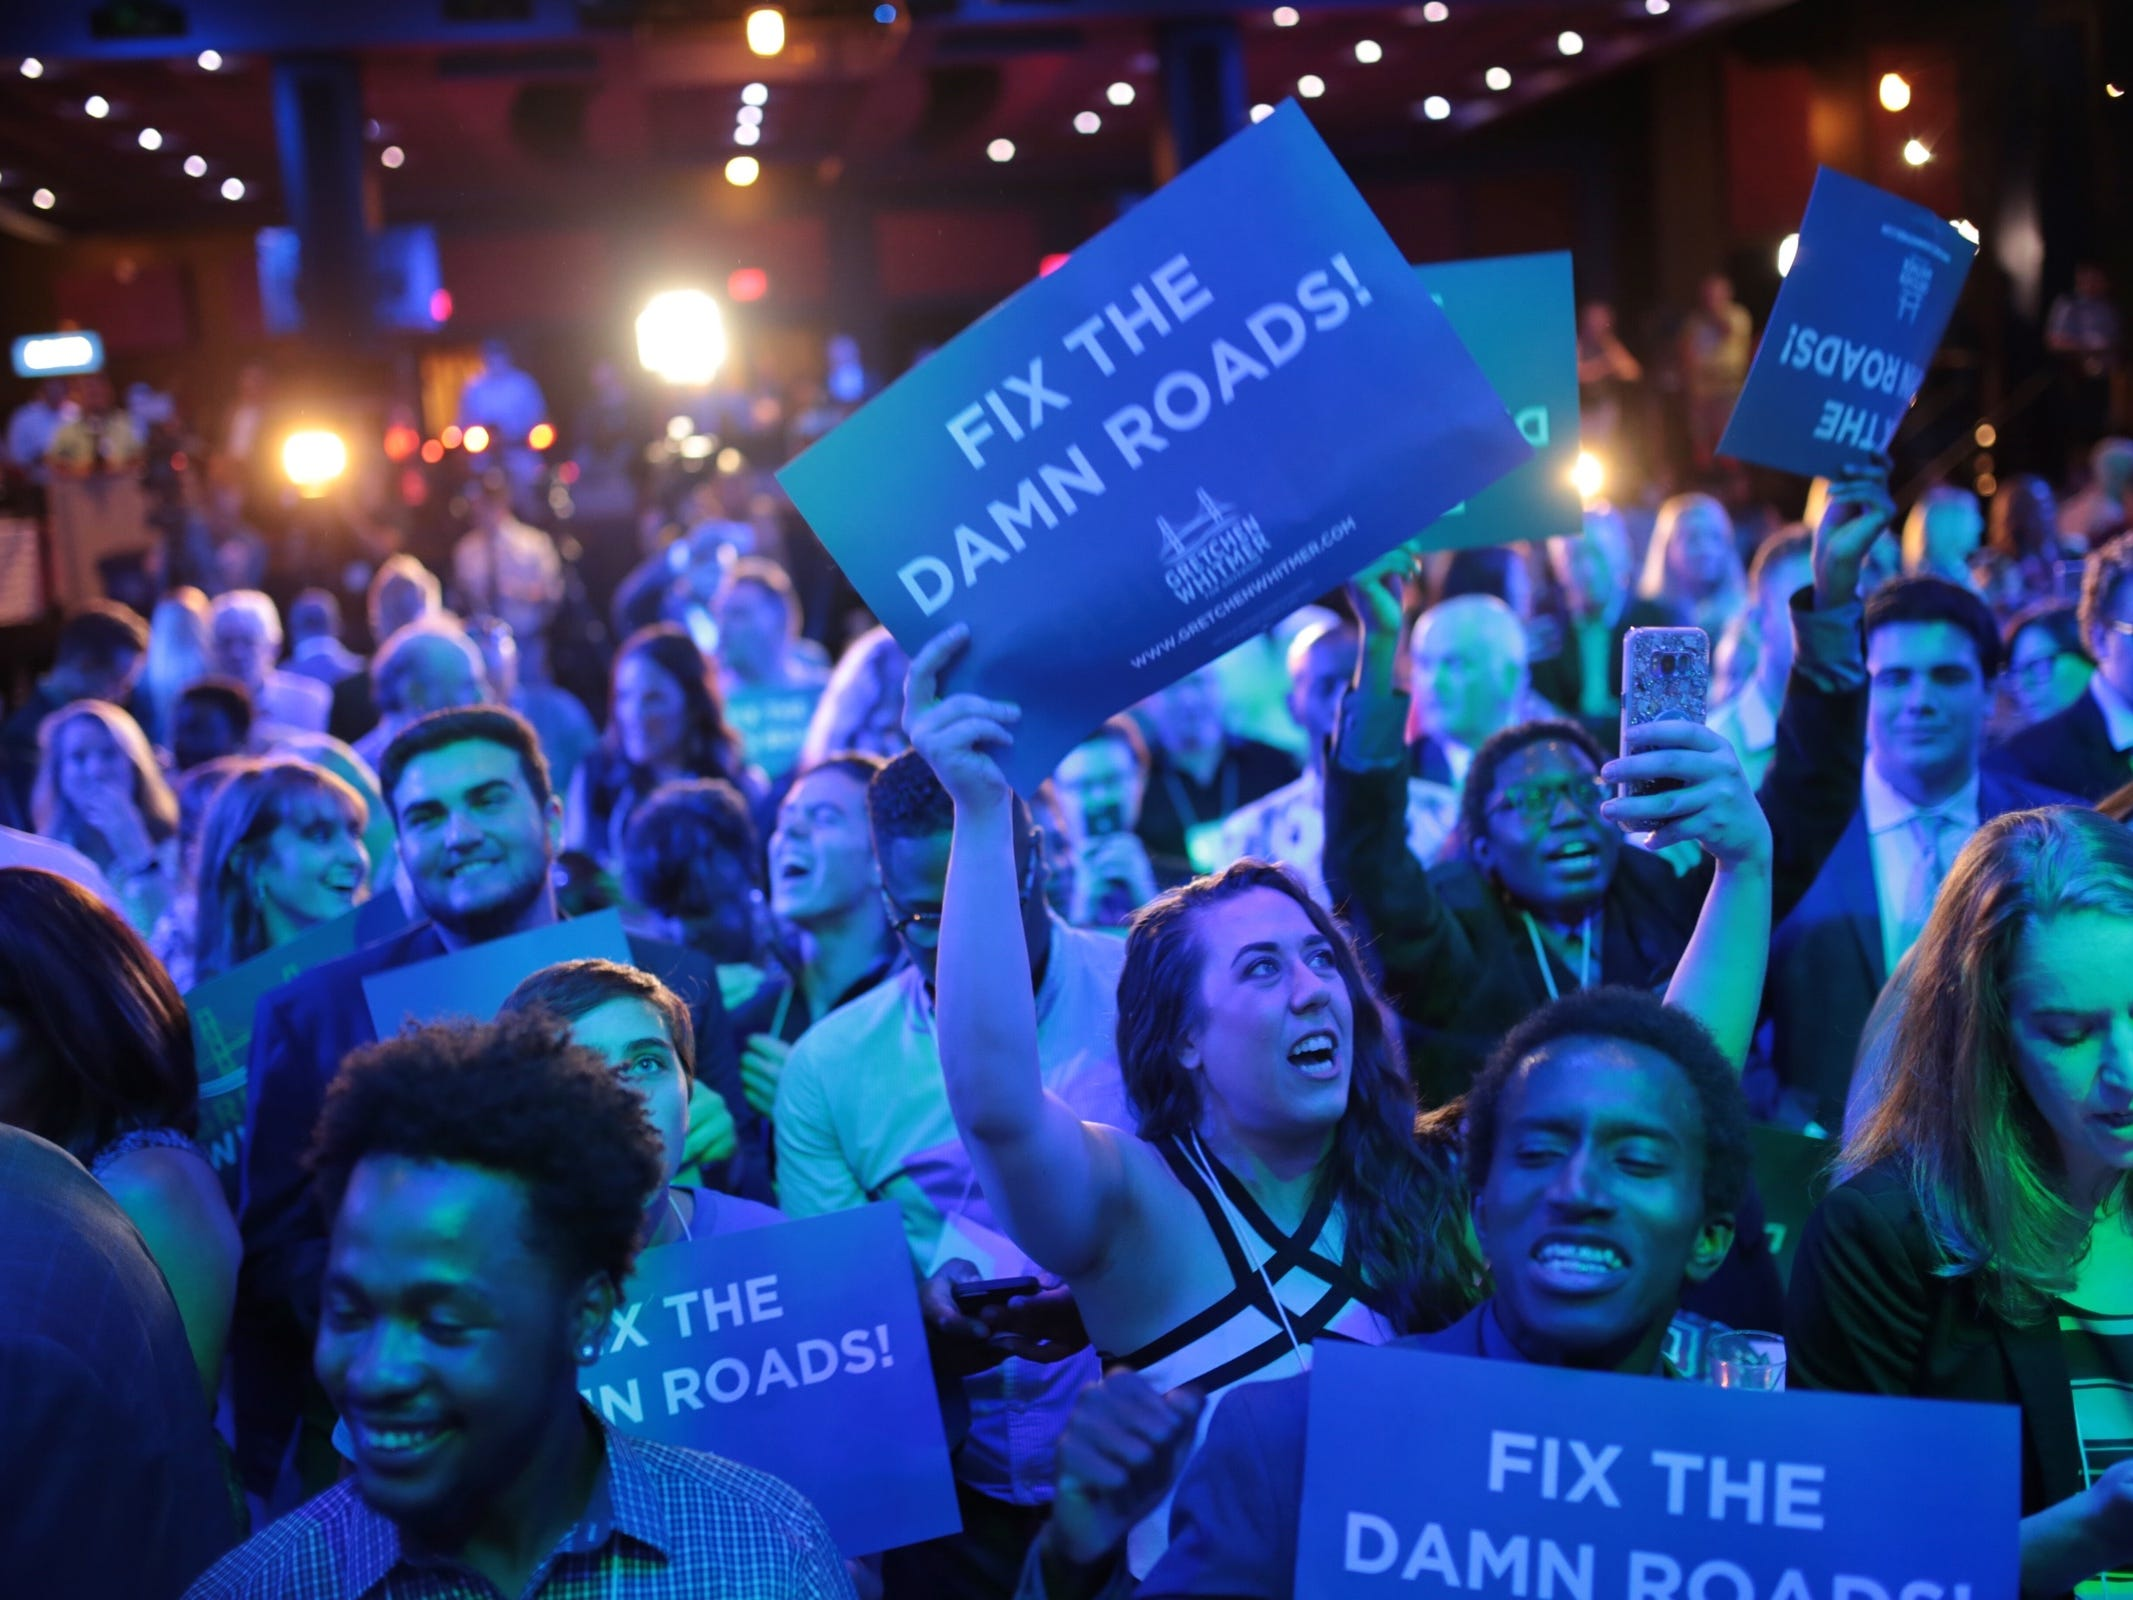 Supporters cheer on democratic gubernatorial candidate Gretchen Whitmer after winning during Michigan's primary race on Tuesday, August 7, 2018 at the election night party at the MotorCity Casino in Detroit.